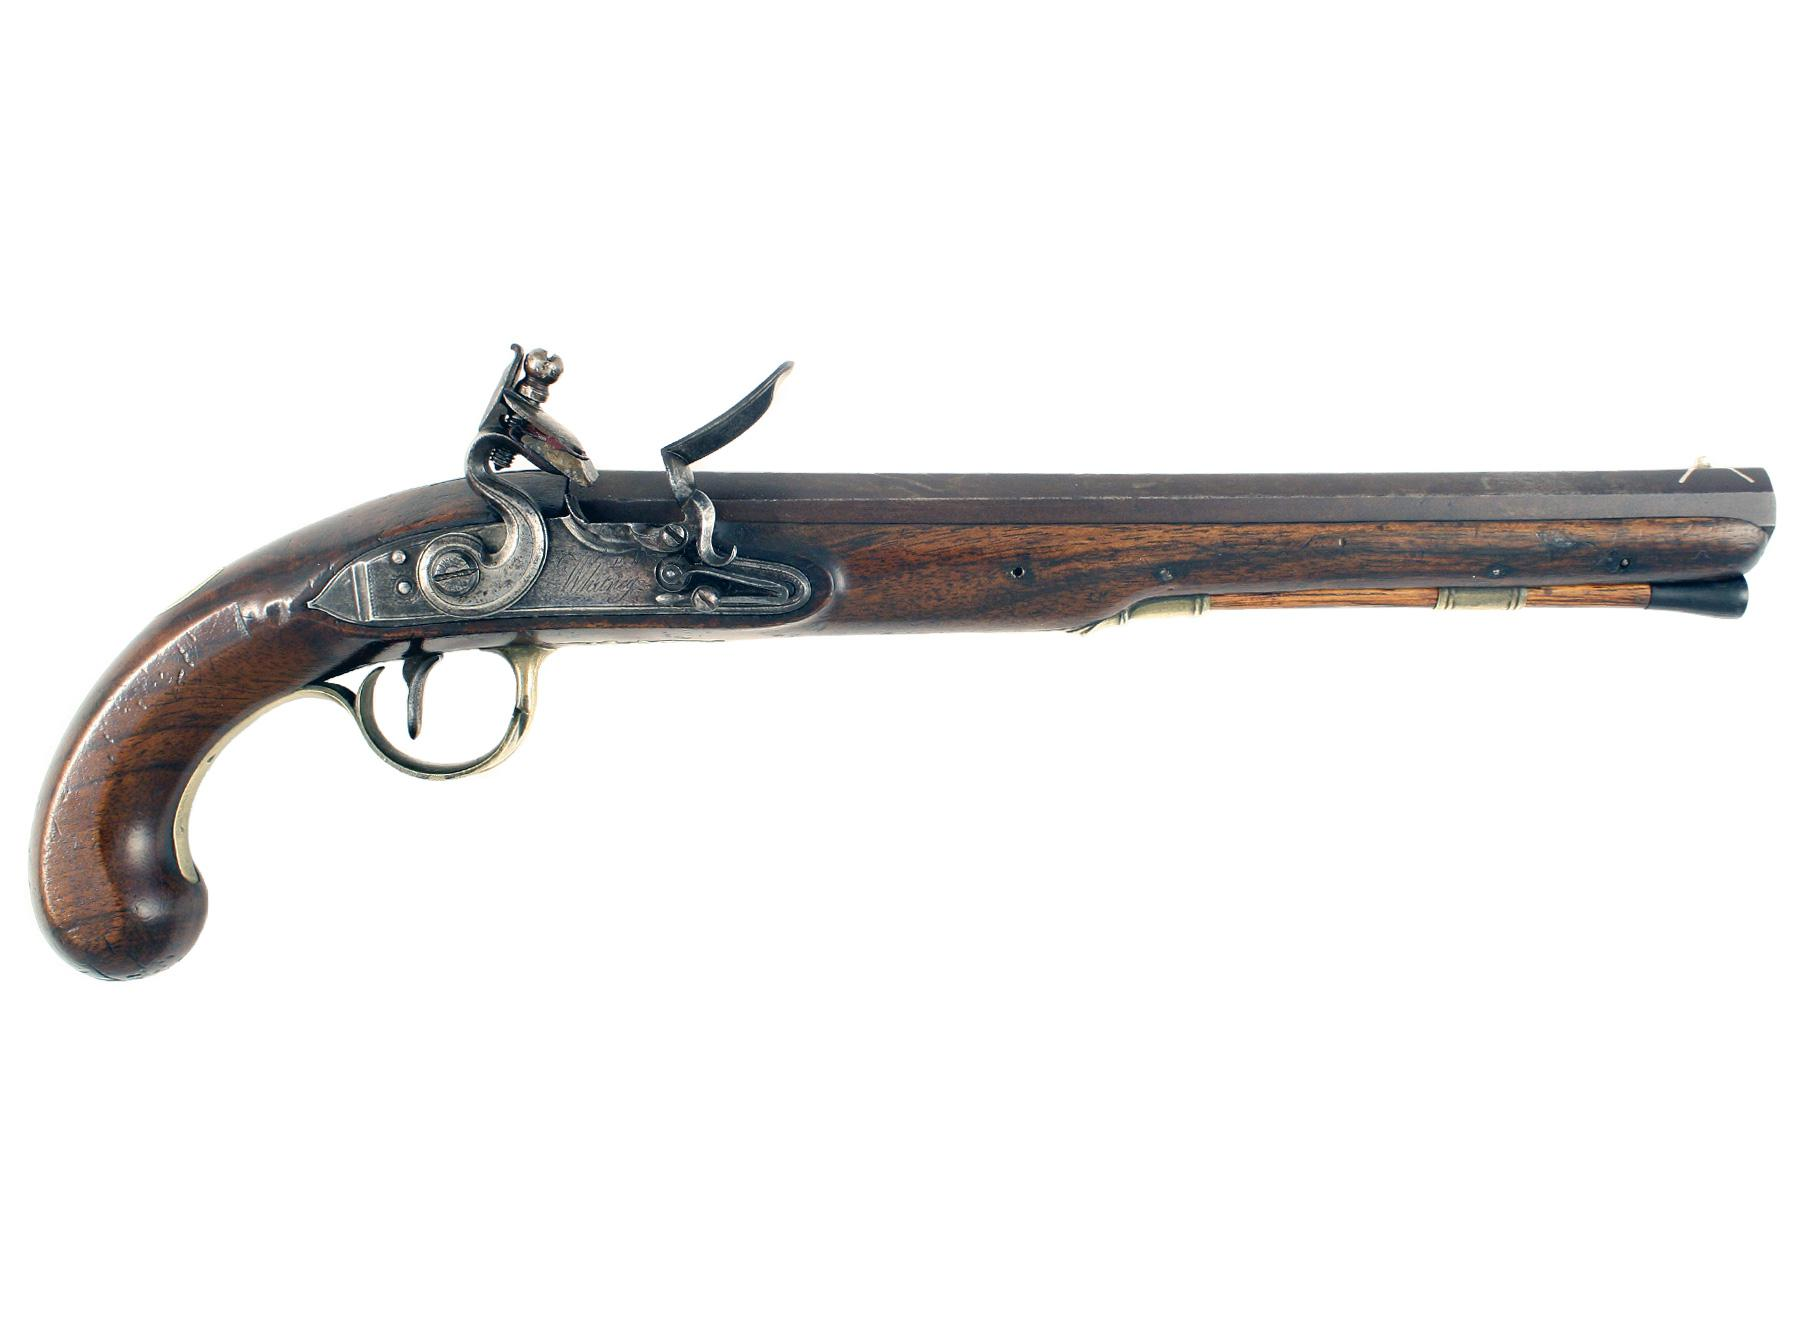 An Irish Duelling Pistol